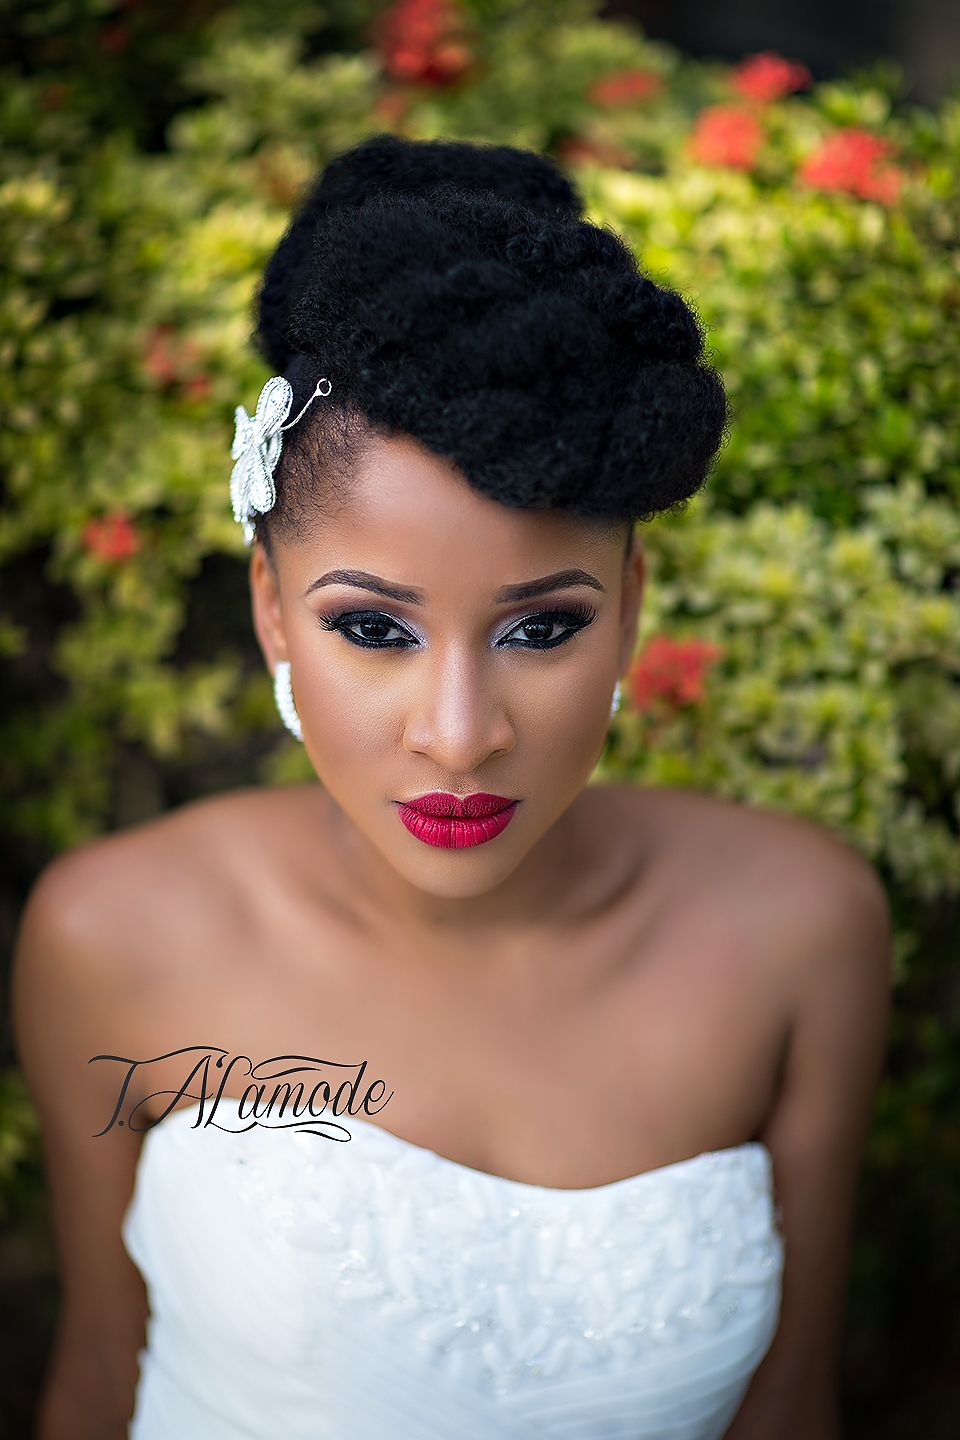 nigerian bridal natural hair and makeup shoot - black bride